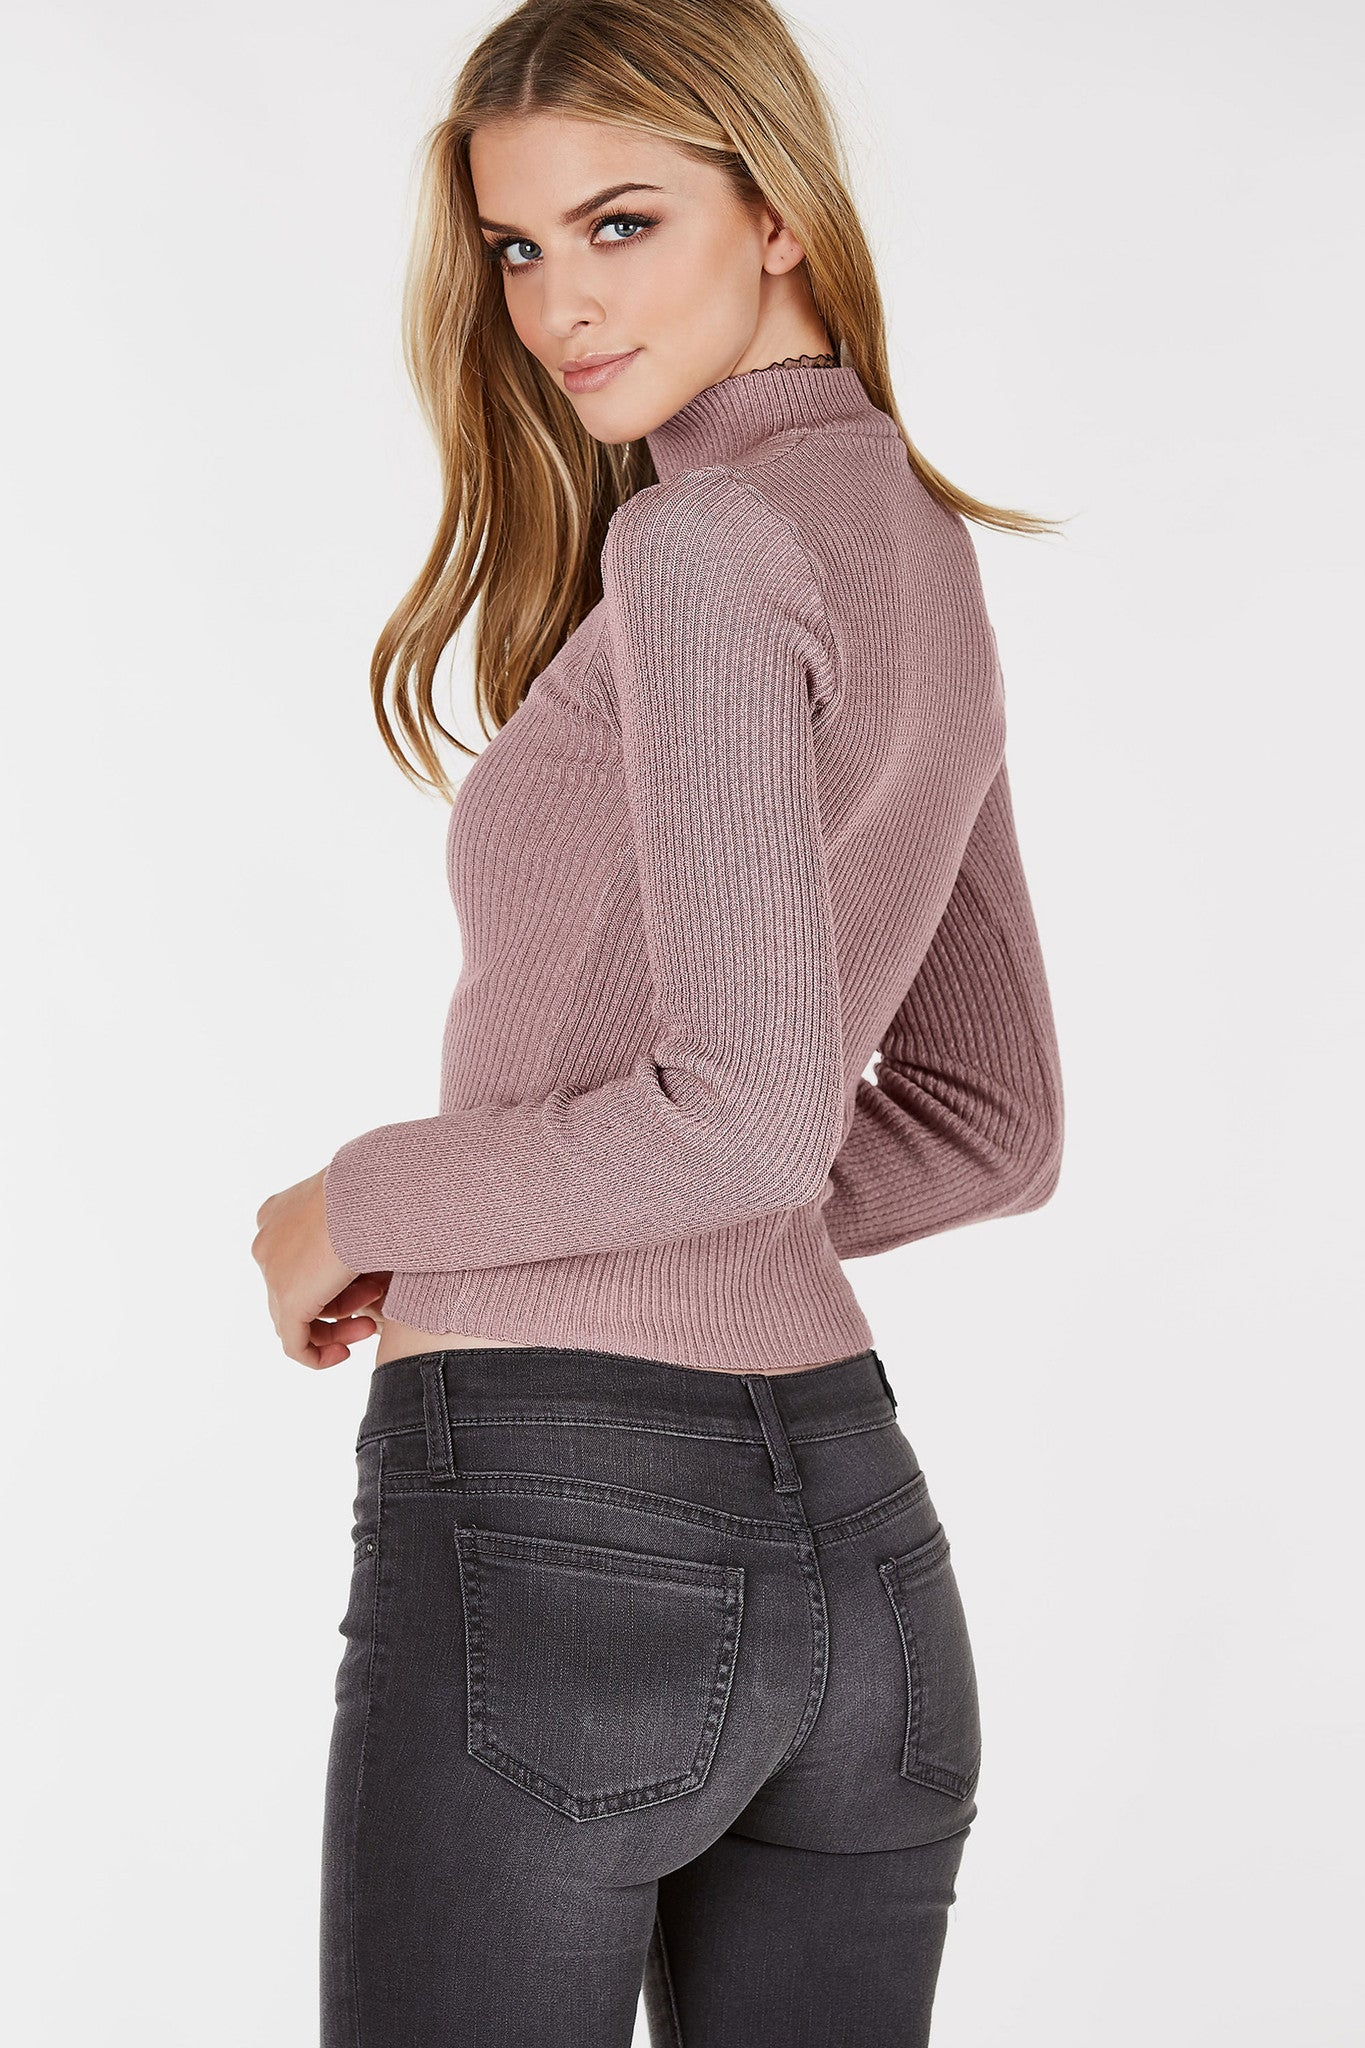 Ribbed long sleeve top with choker neckline and cut out in front. Slim fit with straight hem all around.